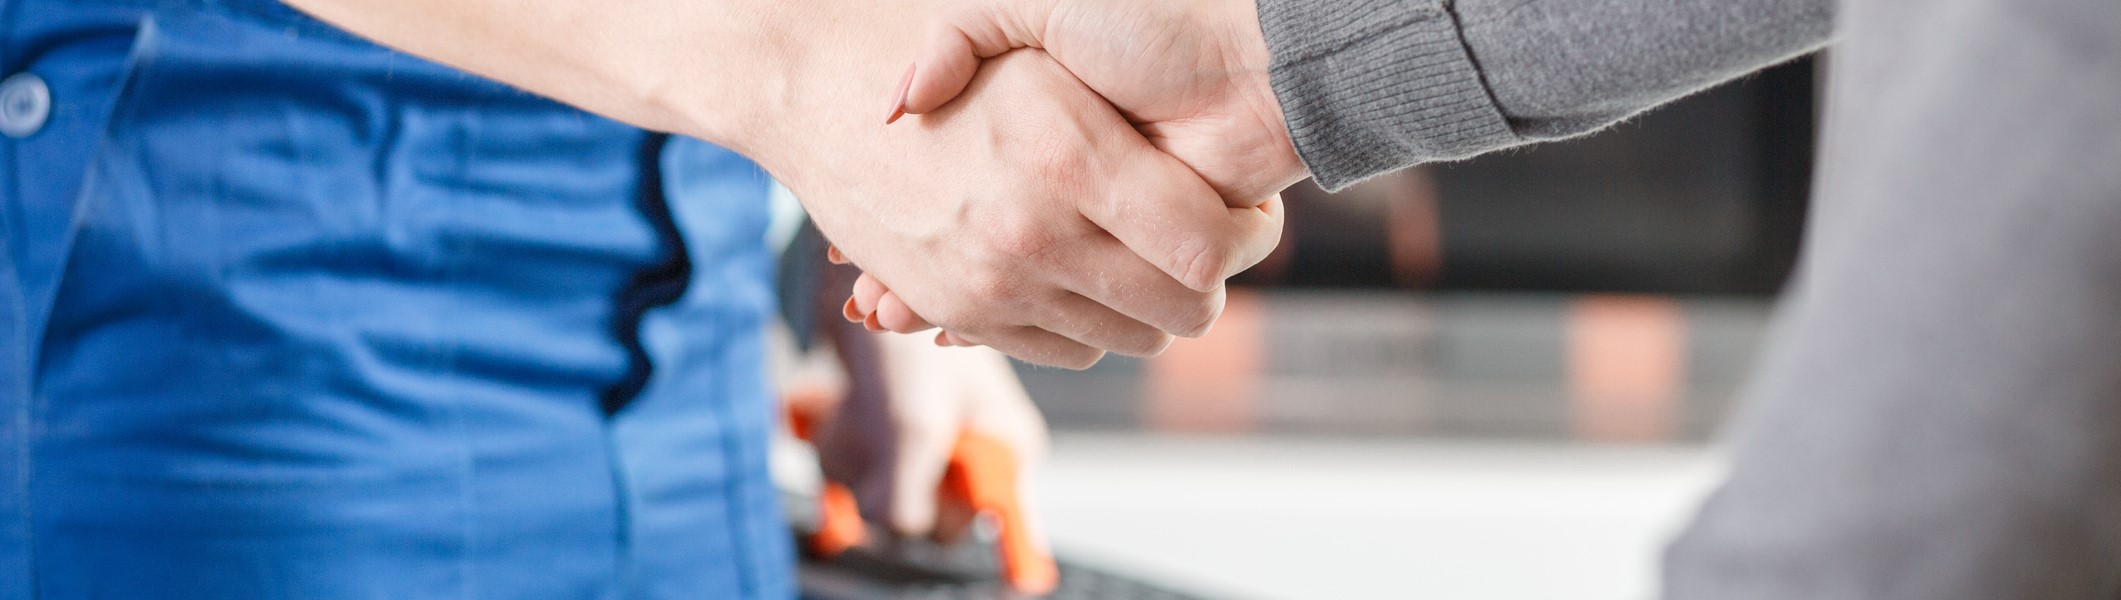 Man in blue jumpsuit holding toolbox and shaking hands with woman in gray sweater [906883676]